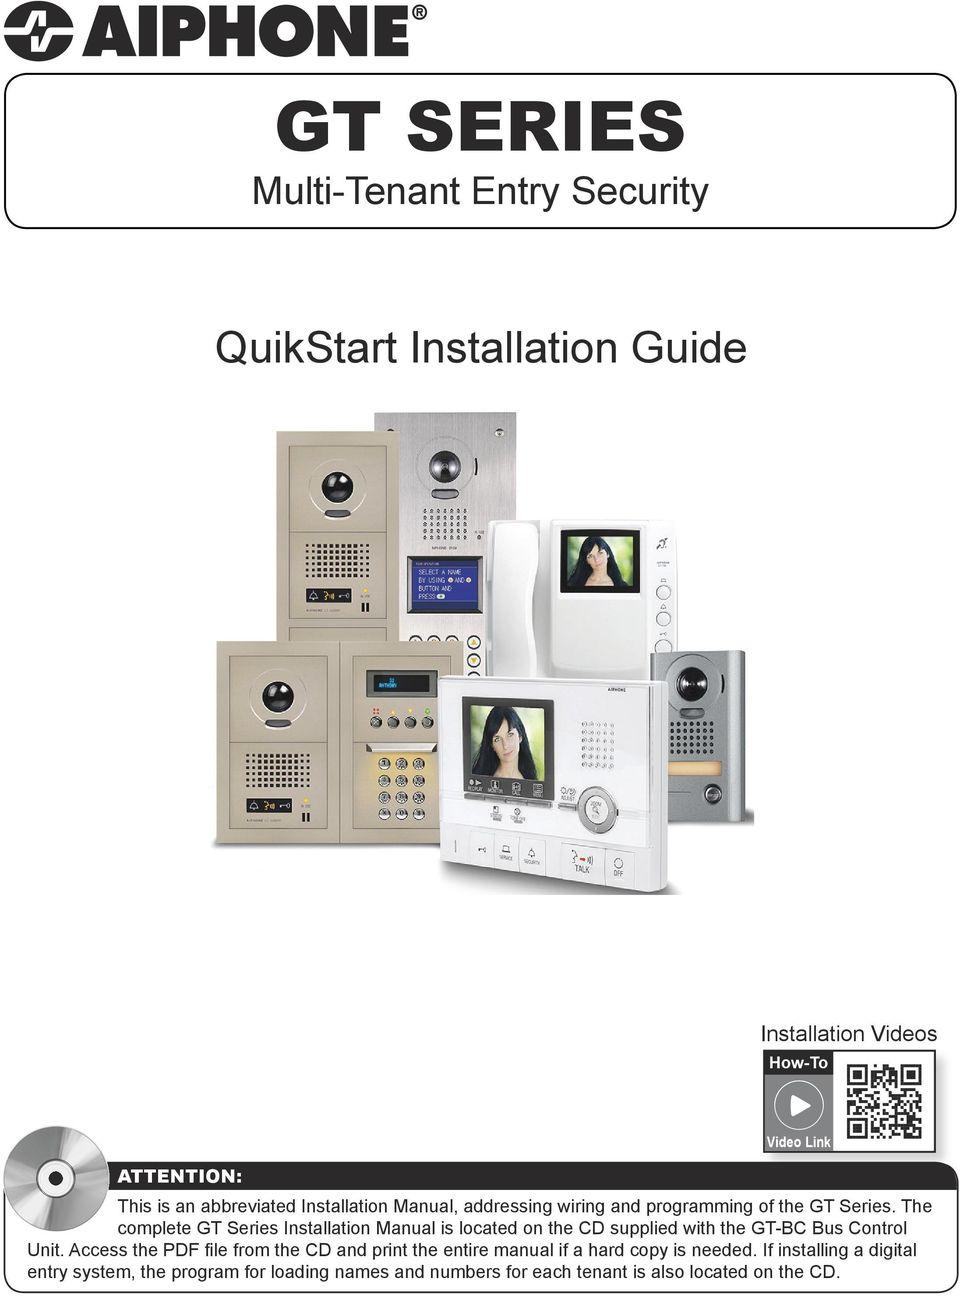 Gt Series Multi Tenant Entry Security Quikstart Installation Guide Aiphone Intercom Wiring Diagram And The Complete Manual Is Located On Cd Supplied With Gtc Us